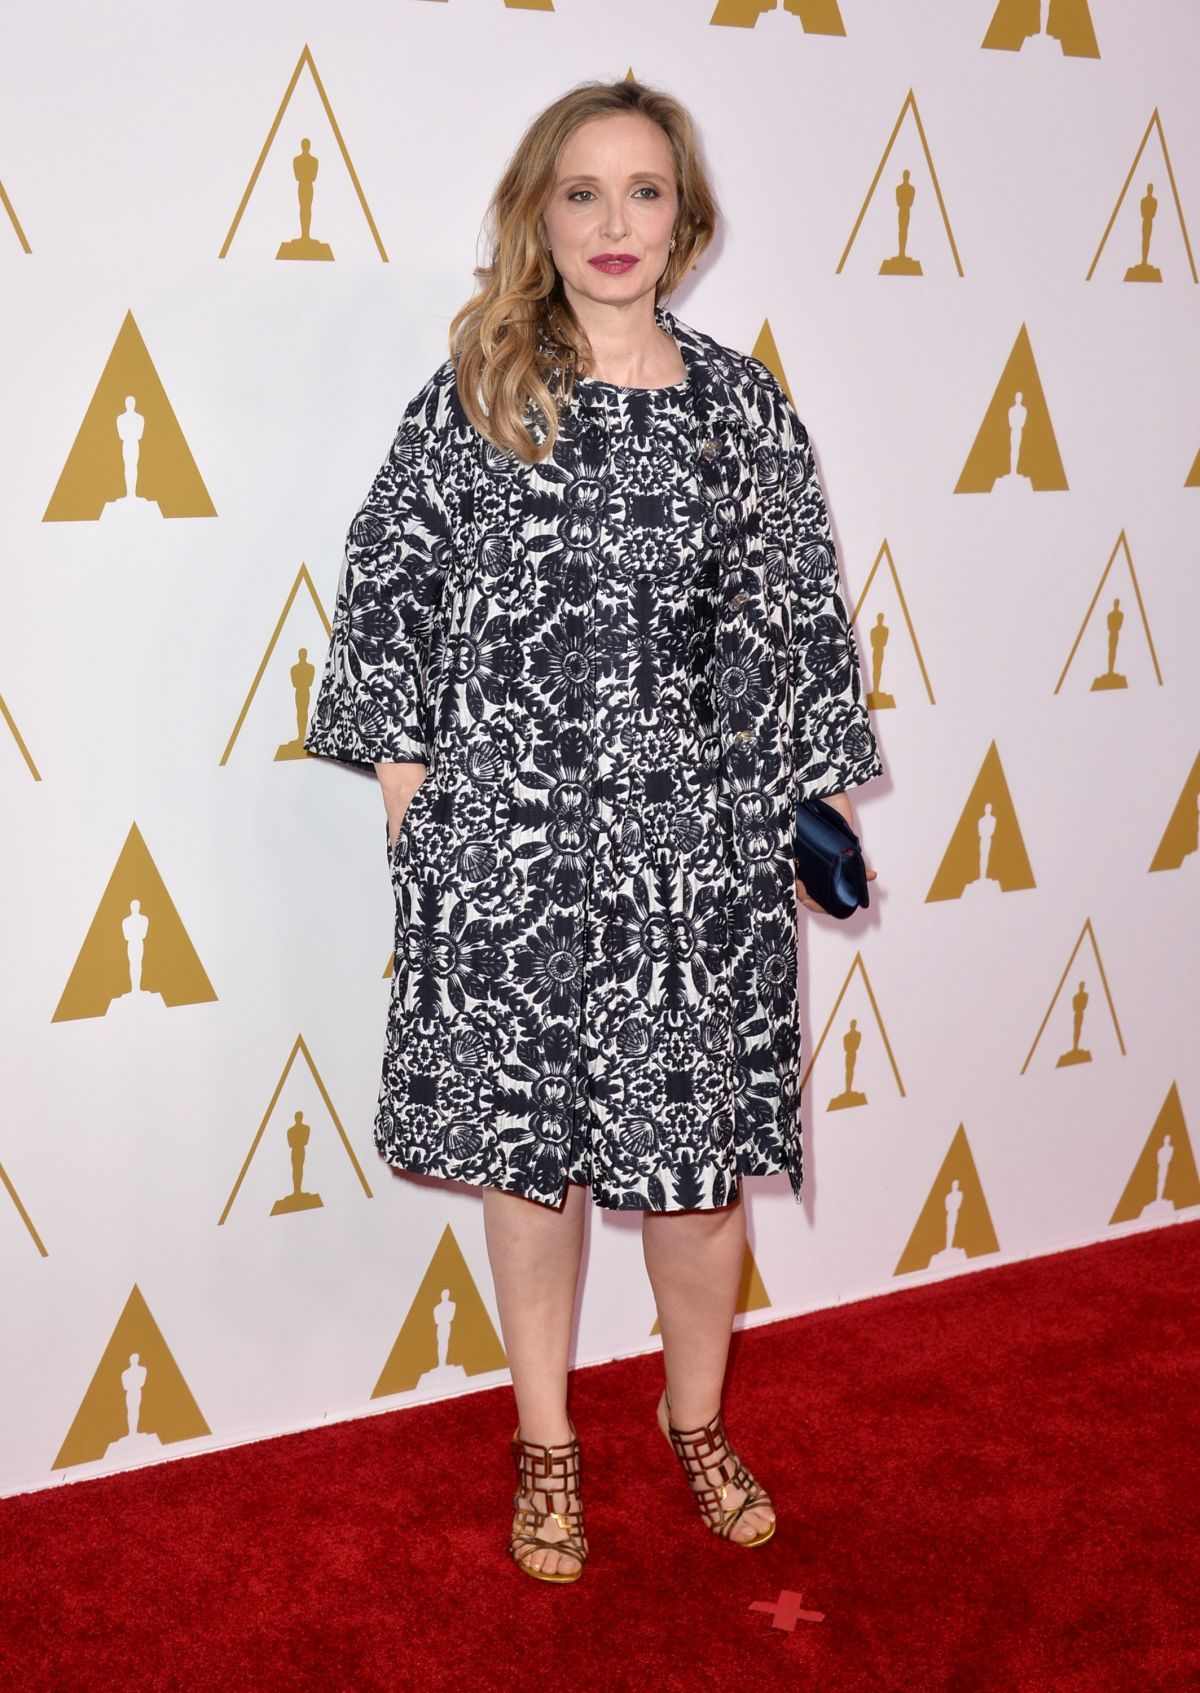 KULI DELPY at 2014 Academy Awards Nominees Luncheon in Beverly Hills